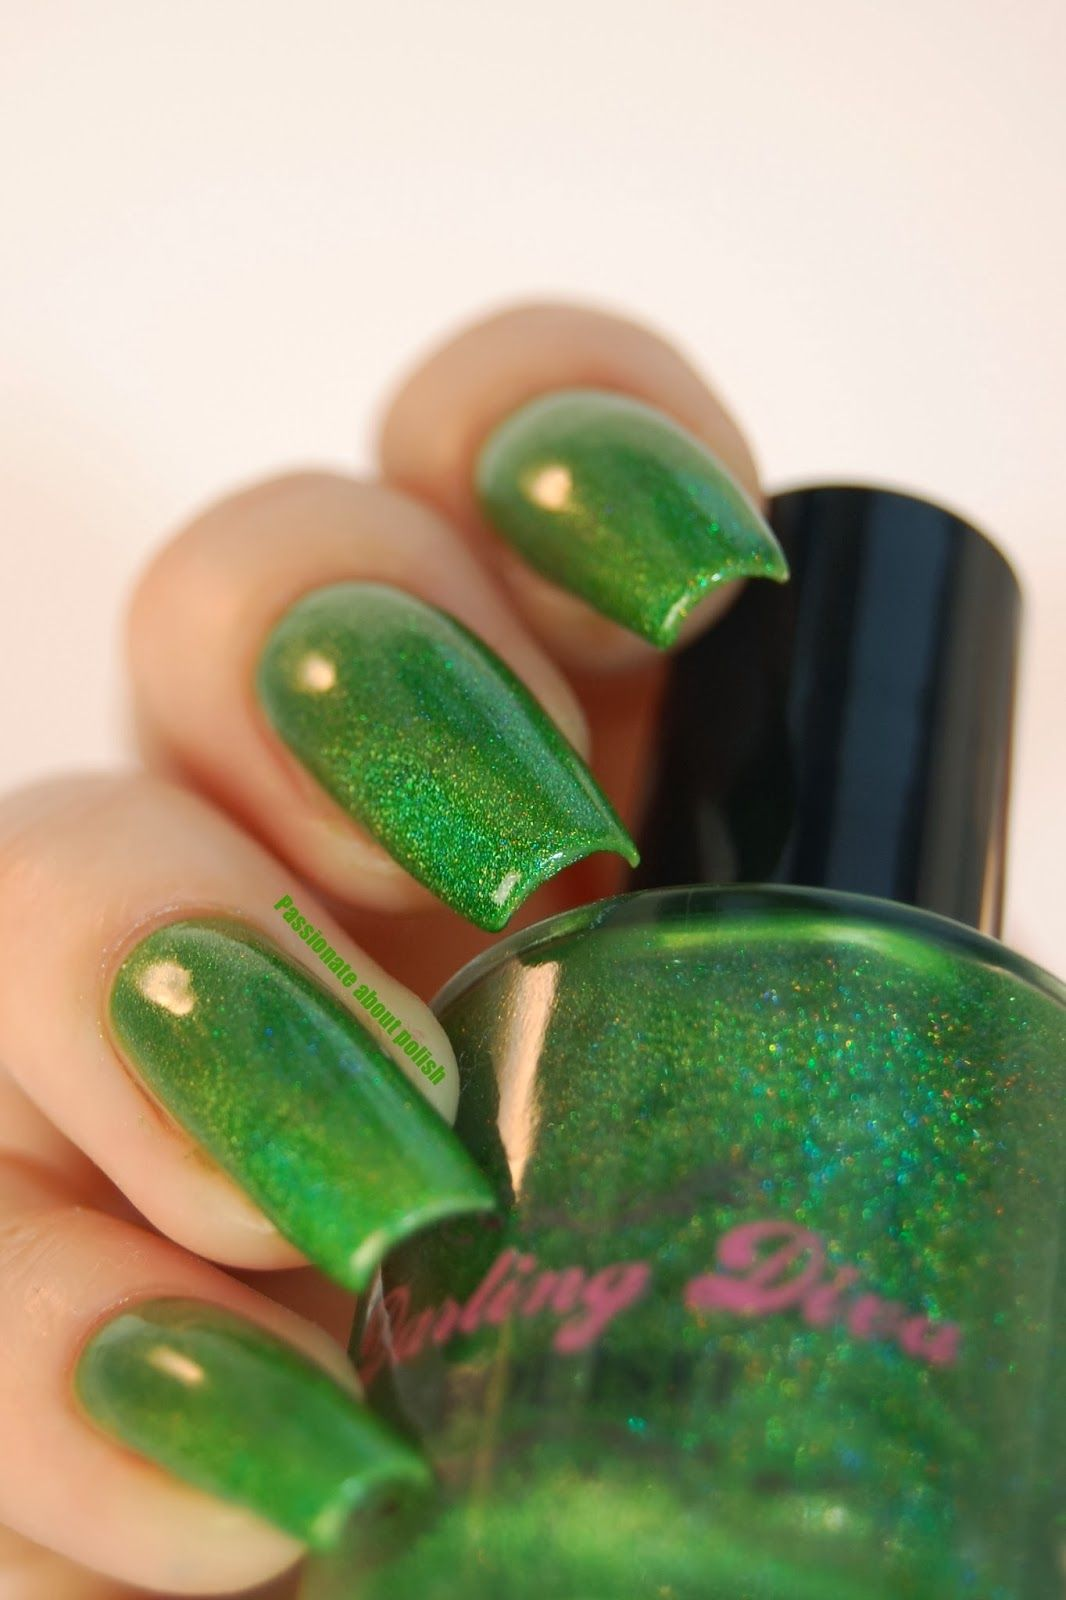 Darling Diva Polish - Landslide